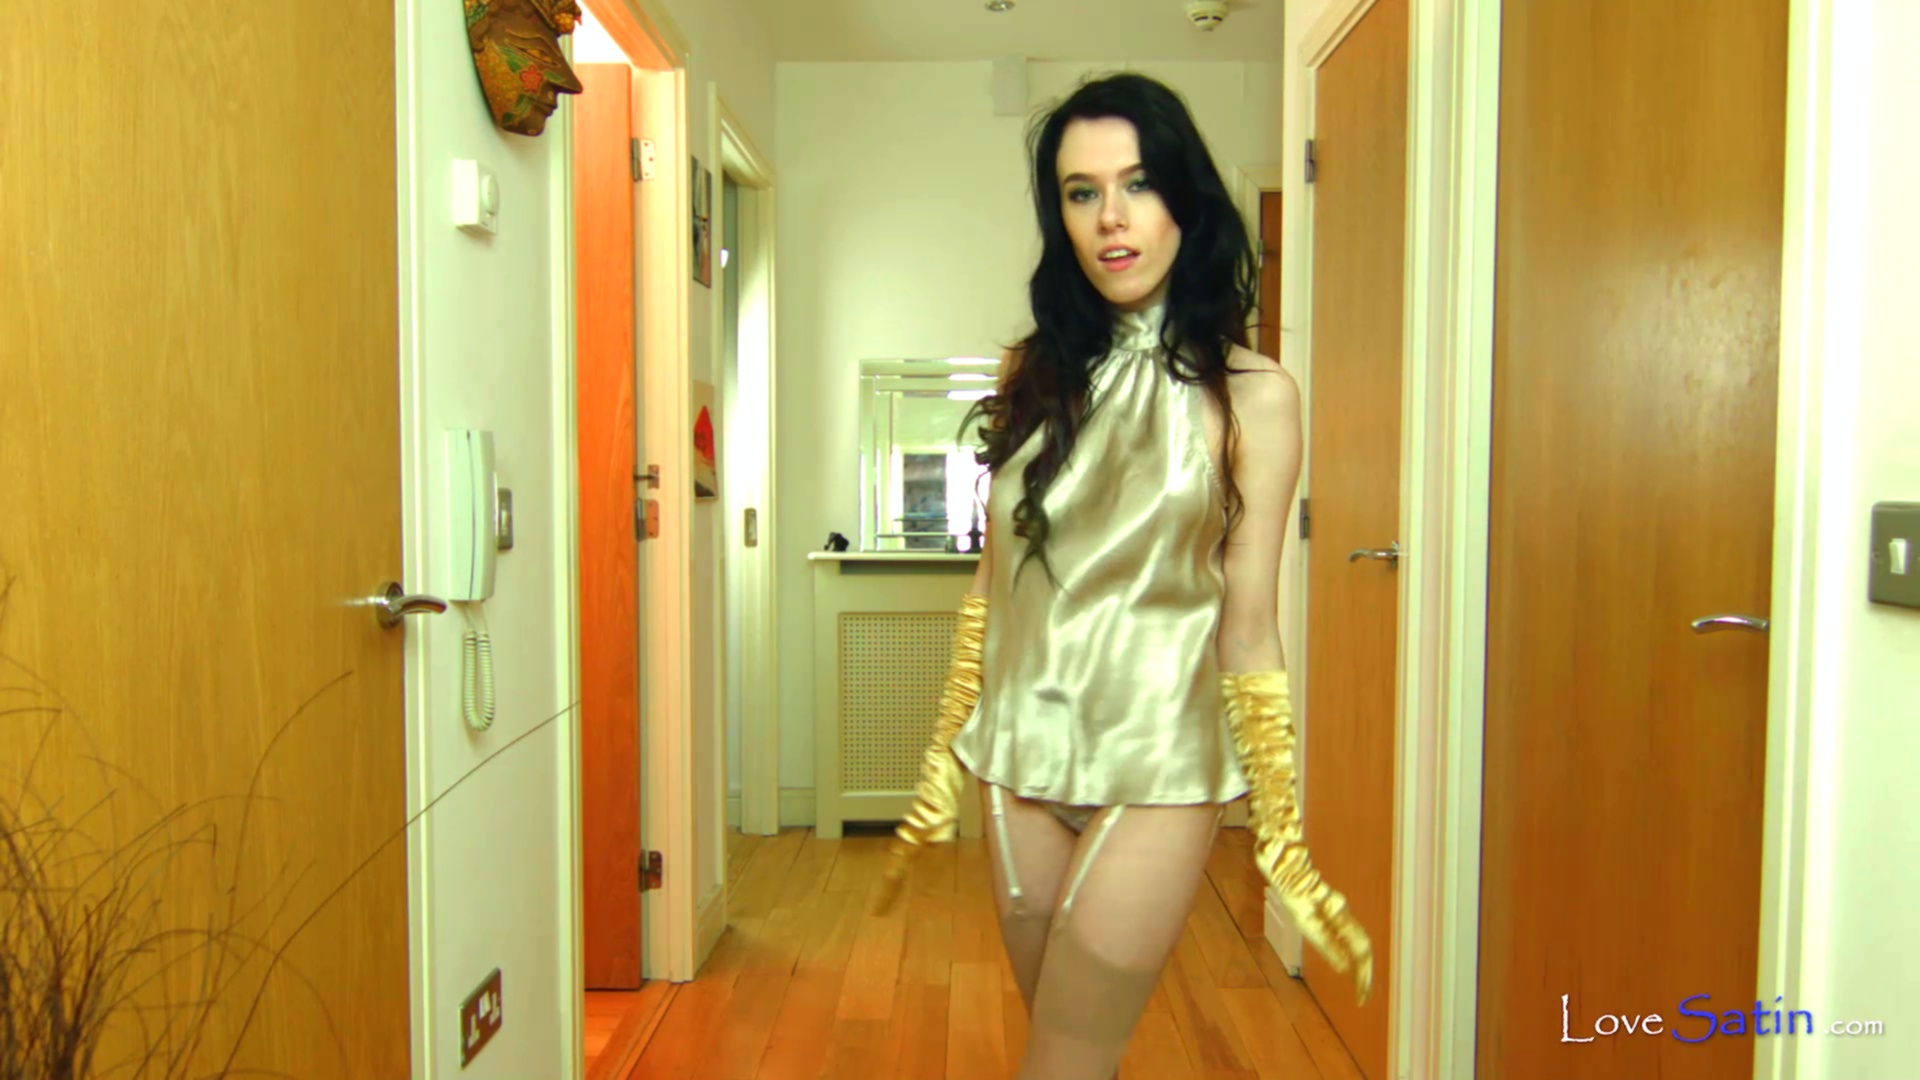 content/Nikita/NIKITA-GOLD-SECRETARY-VIDEO/0.jpg